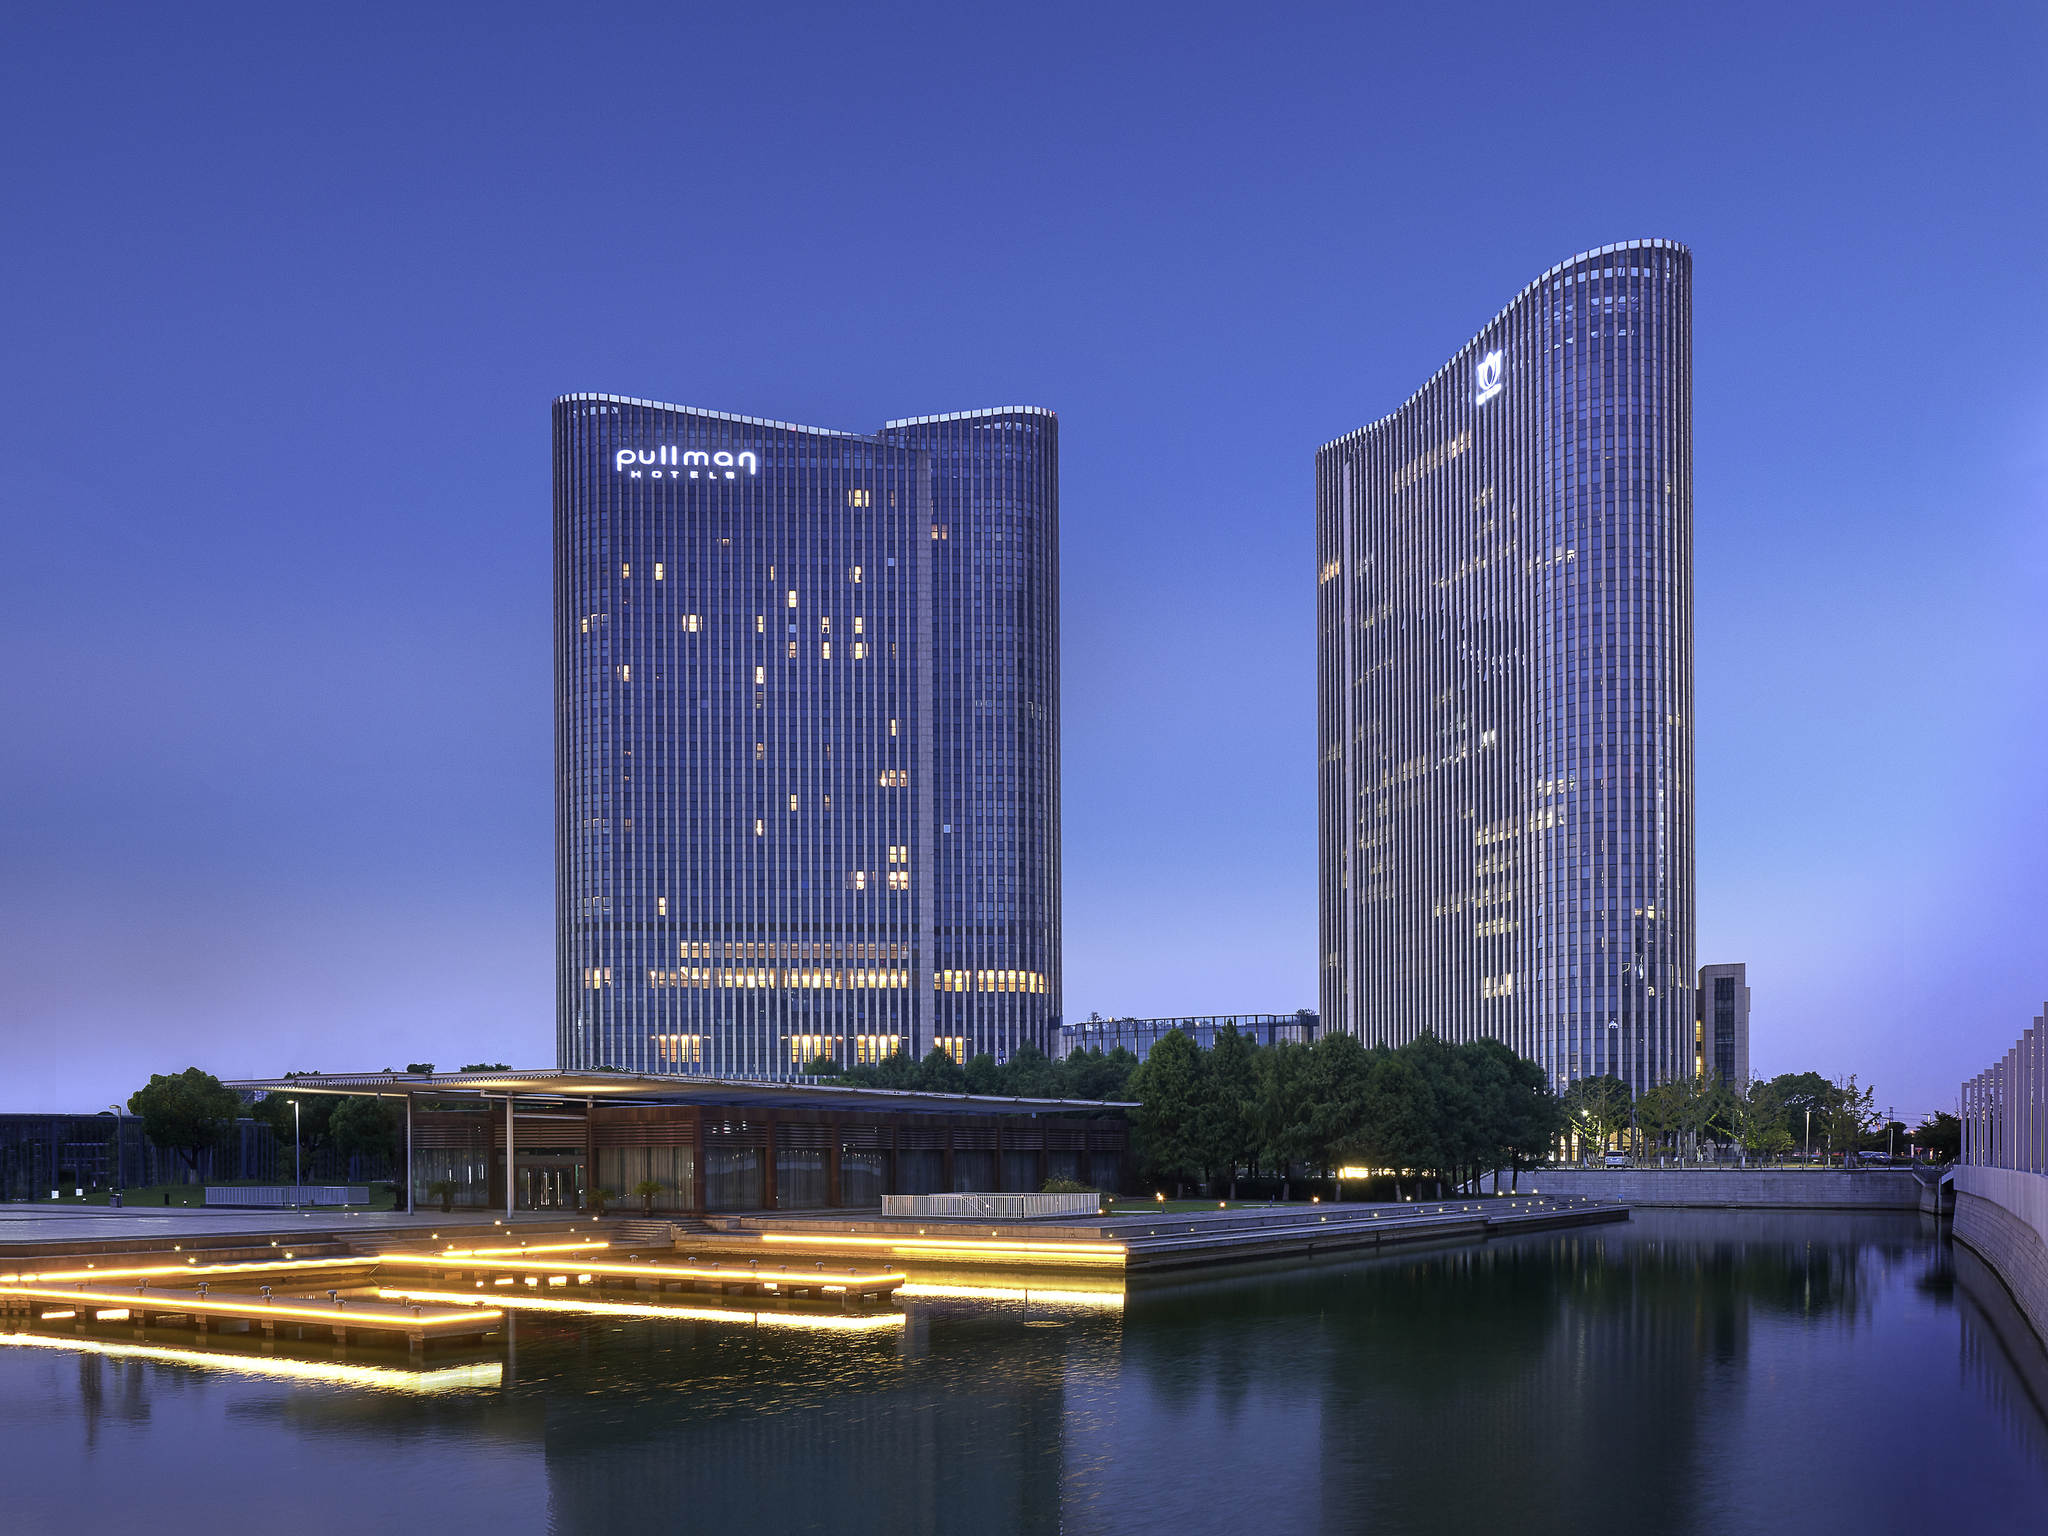 Hotell – Pullman Wuxi New Lake